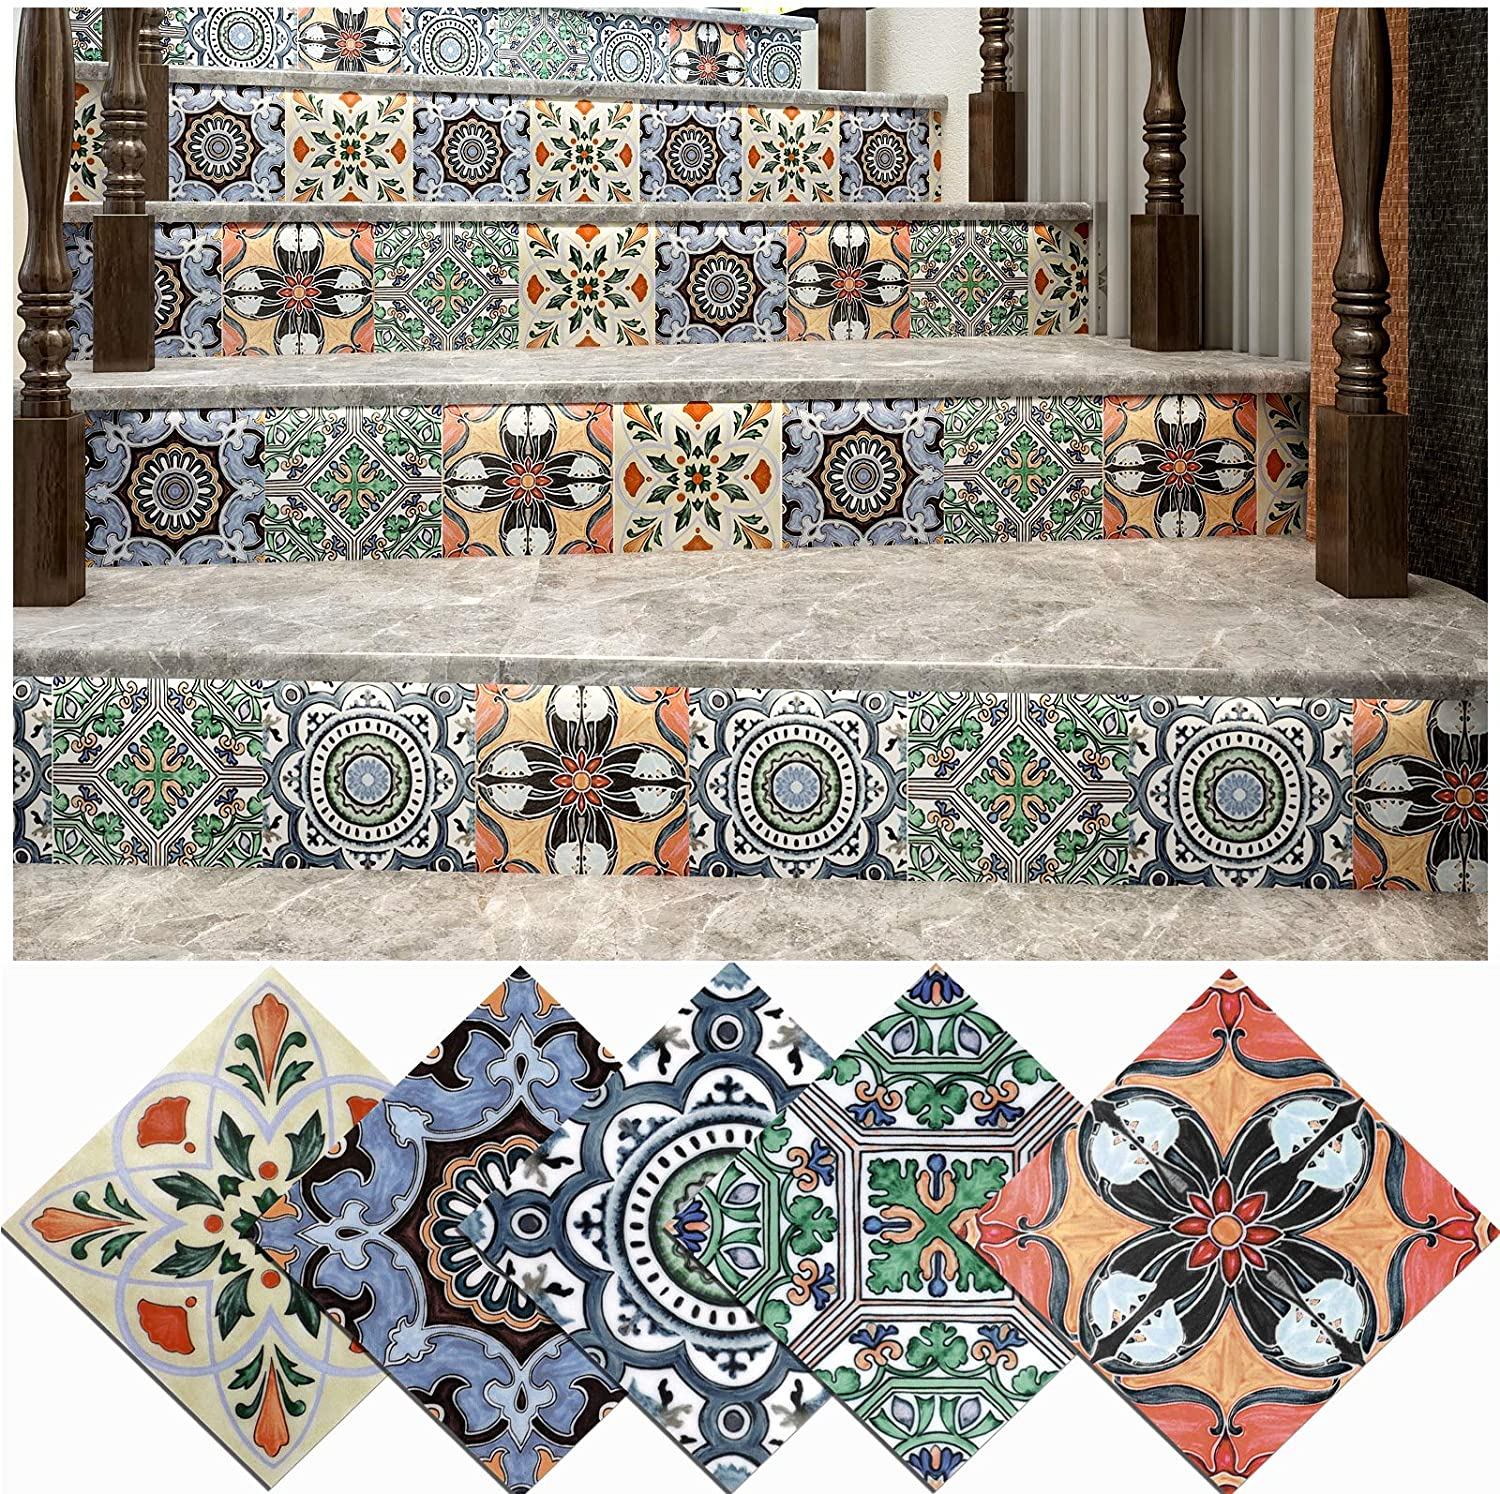 Floor Tiles Decor Stickers Removable Self Adhesive Wall Sticker Home Decor